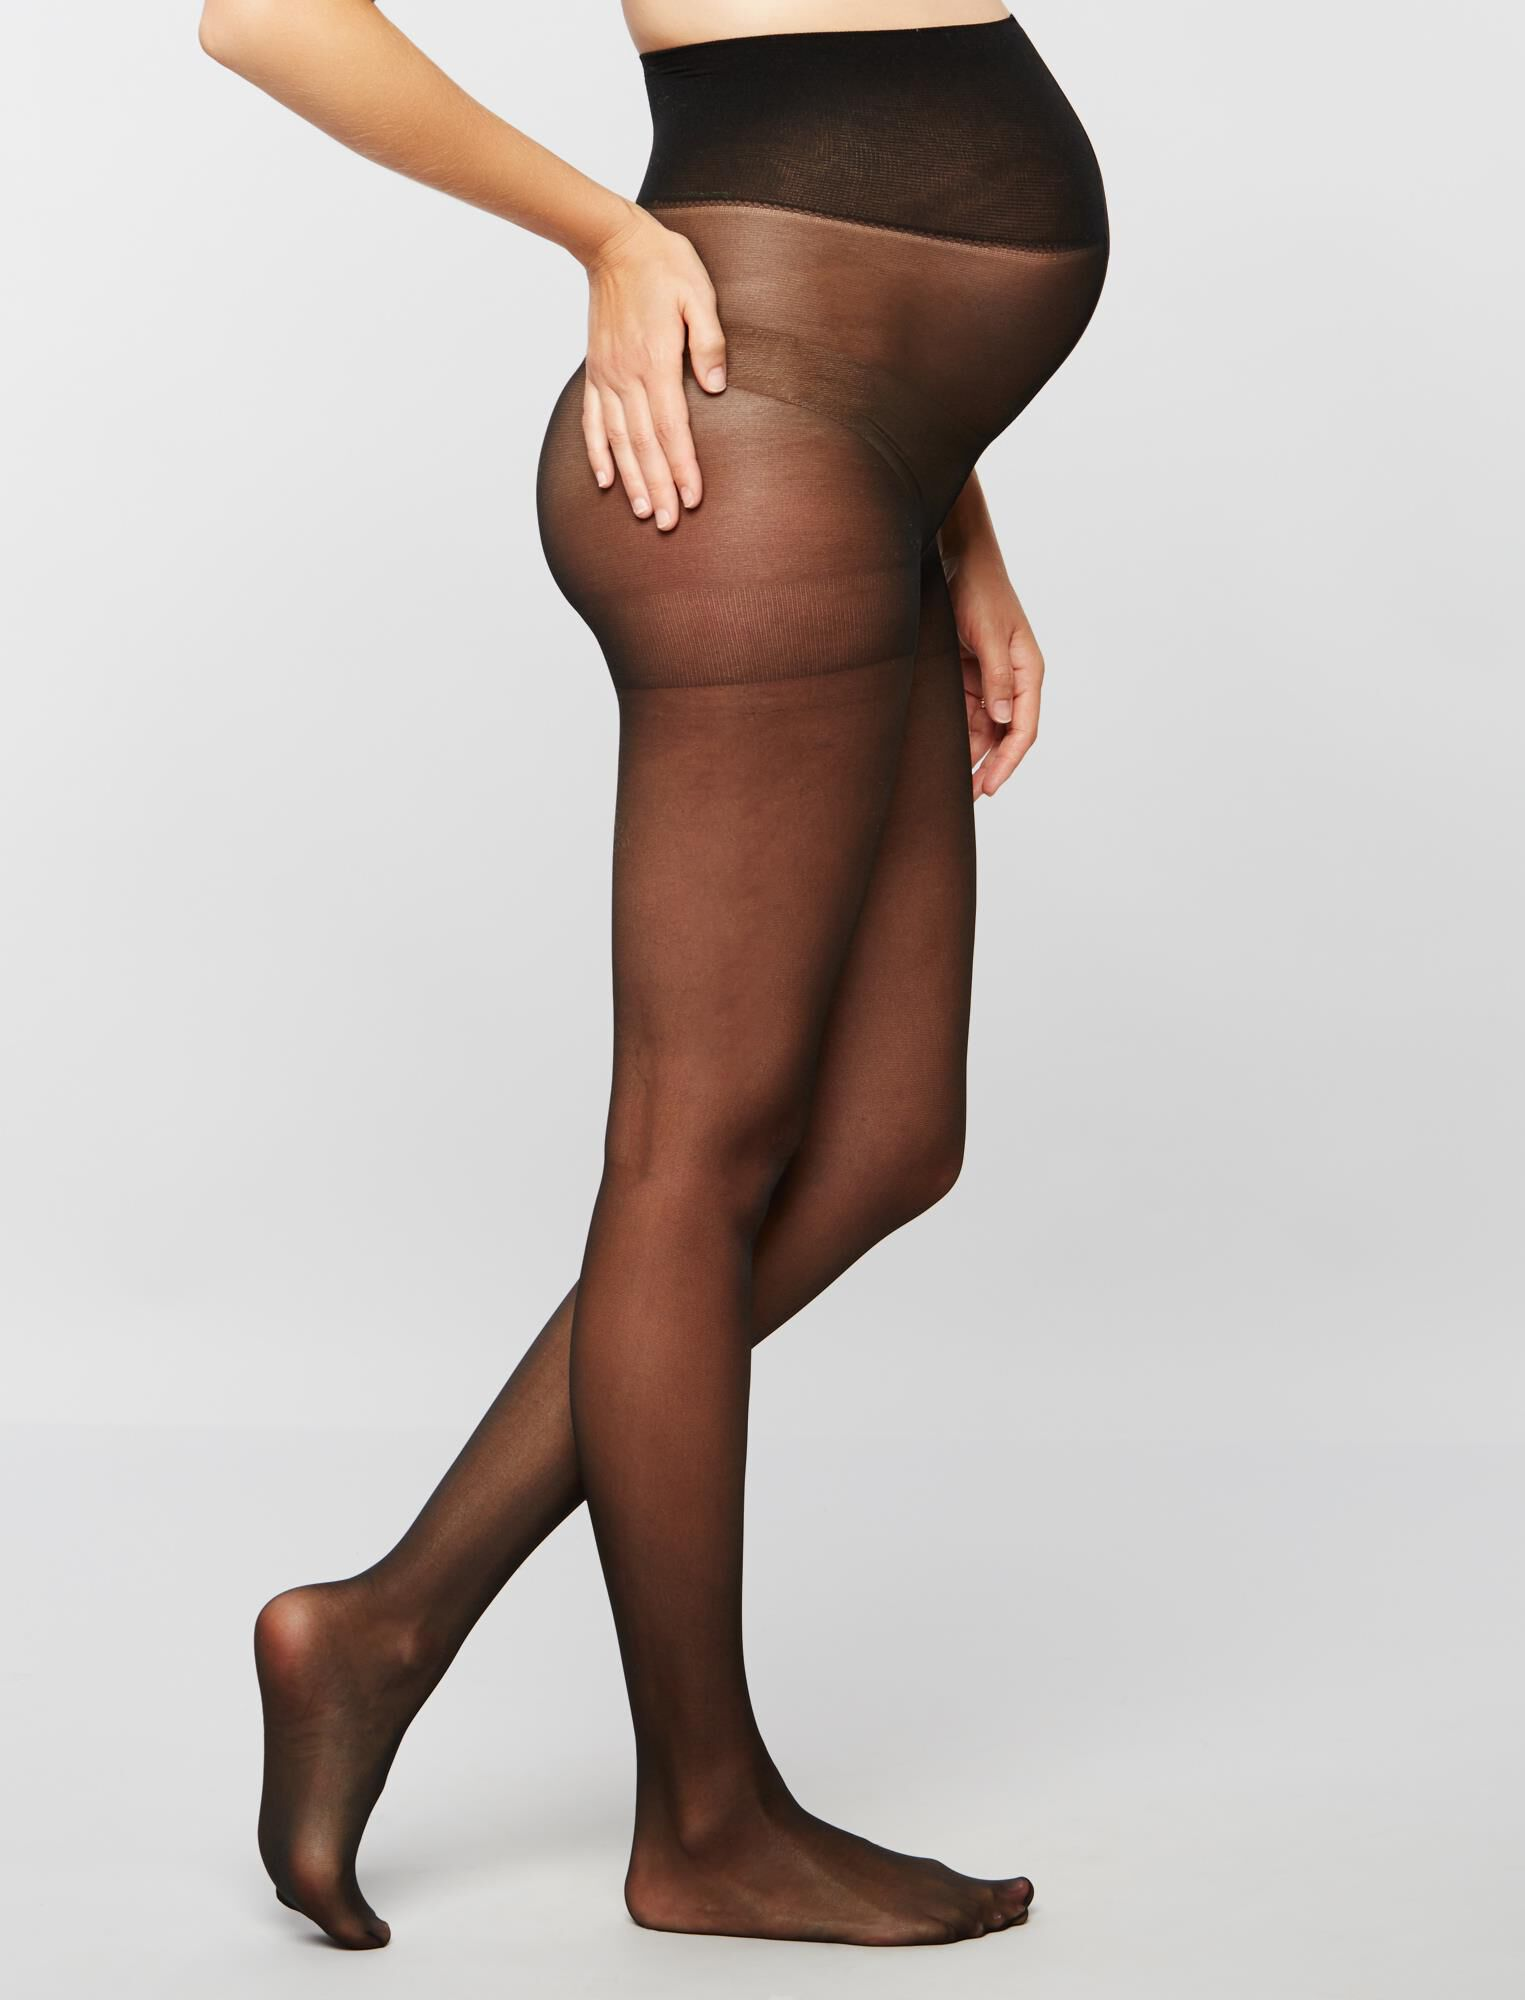 Light Compression Maternity Pantyhose